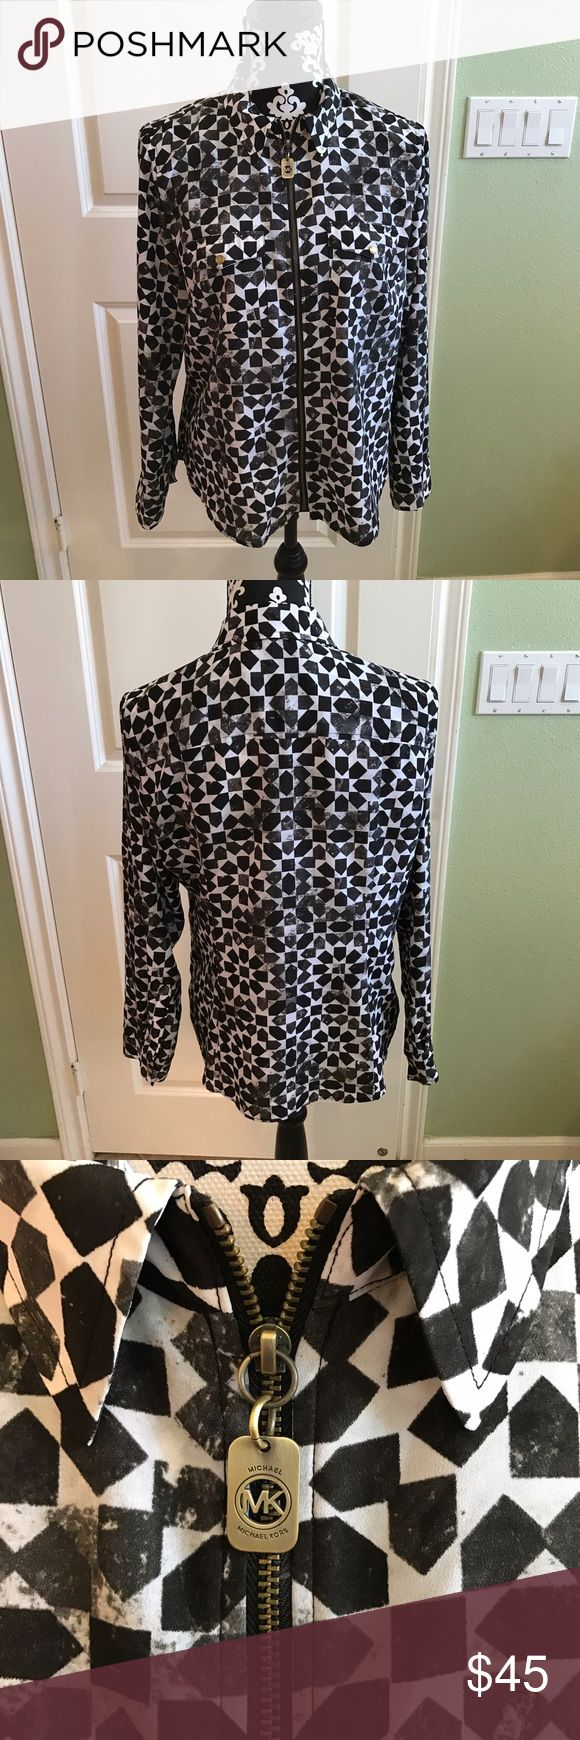 Micheal Kors Zip up blouse Like new worn once has a full working zipper front can be worn as a blouse or jacket no rips stains or tears Michael Kors Tops Blouses